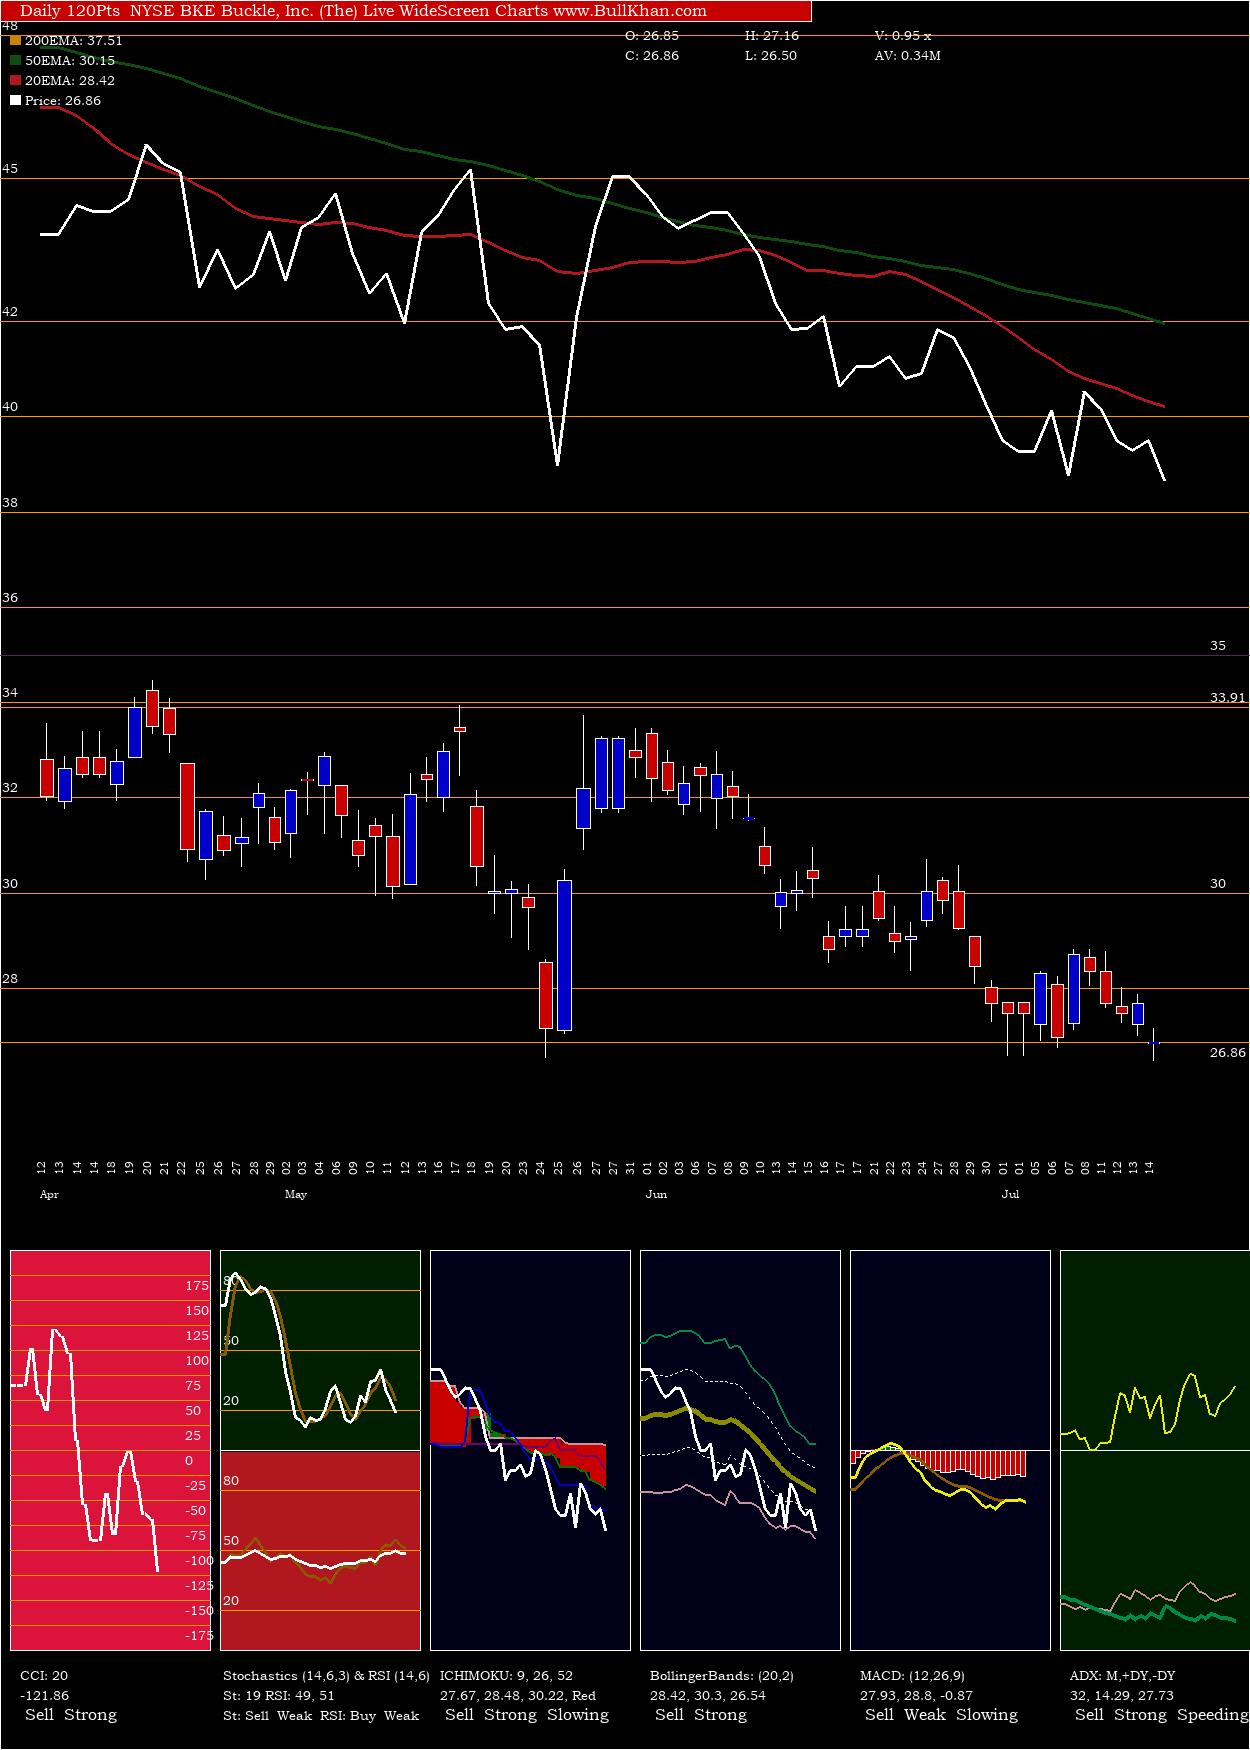 Buckle, Inc. (The) charts and indicators